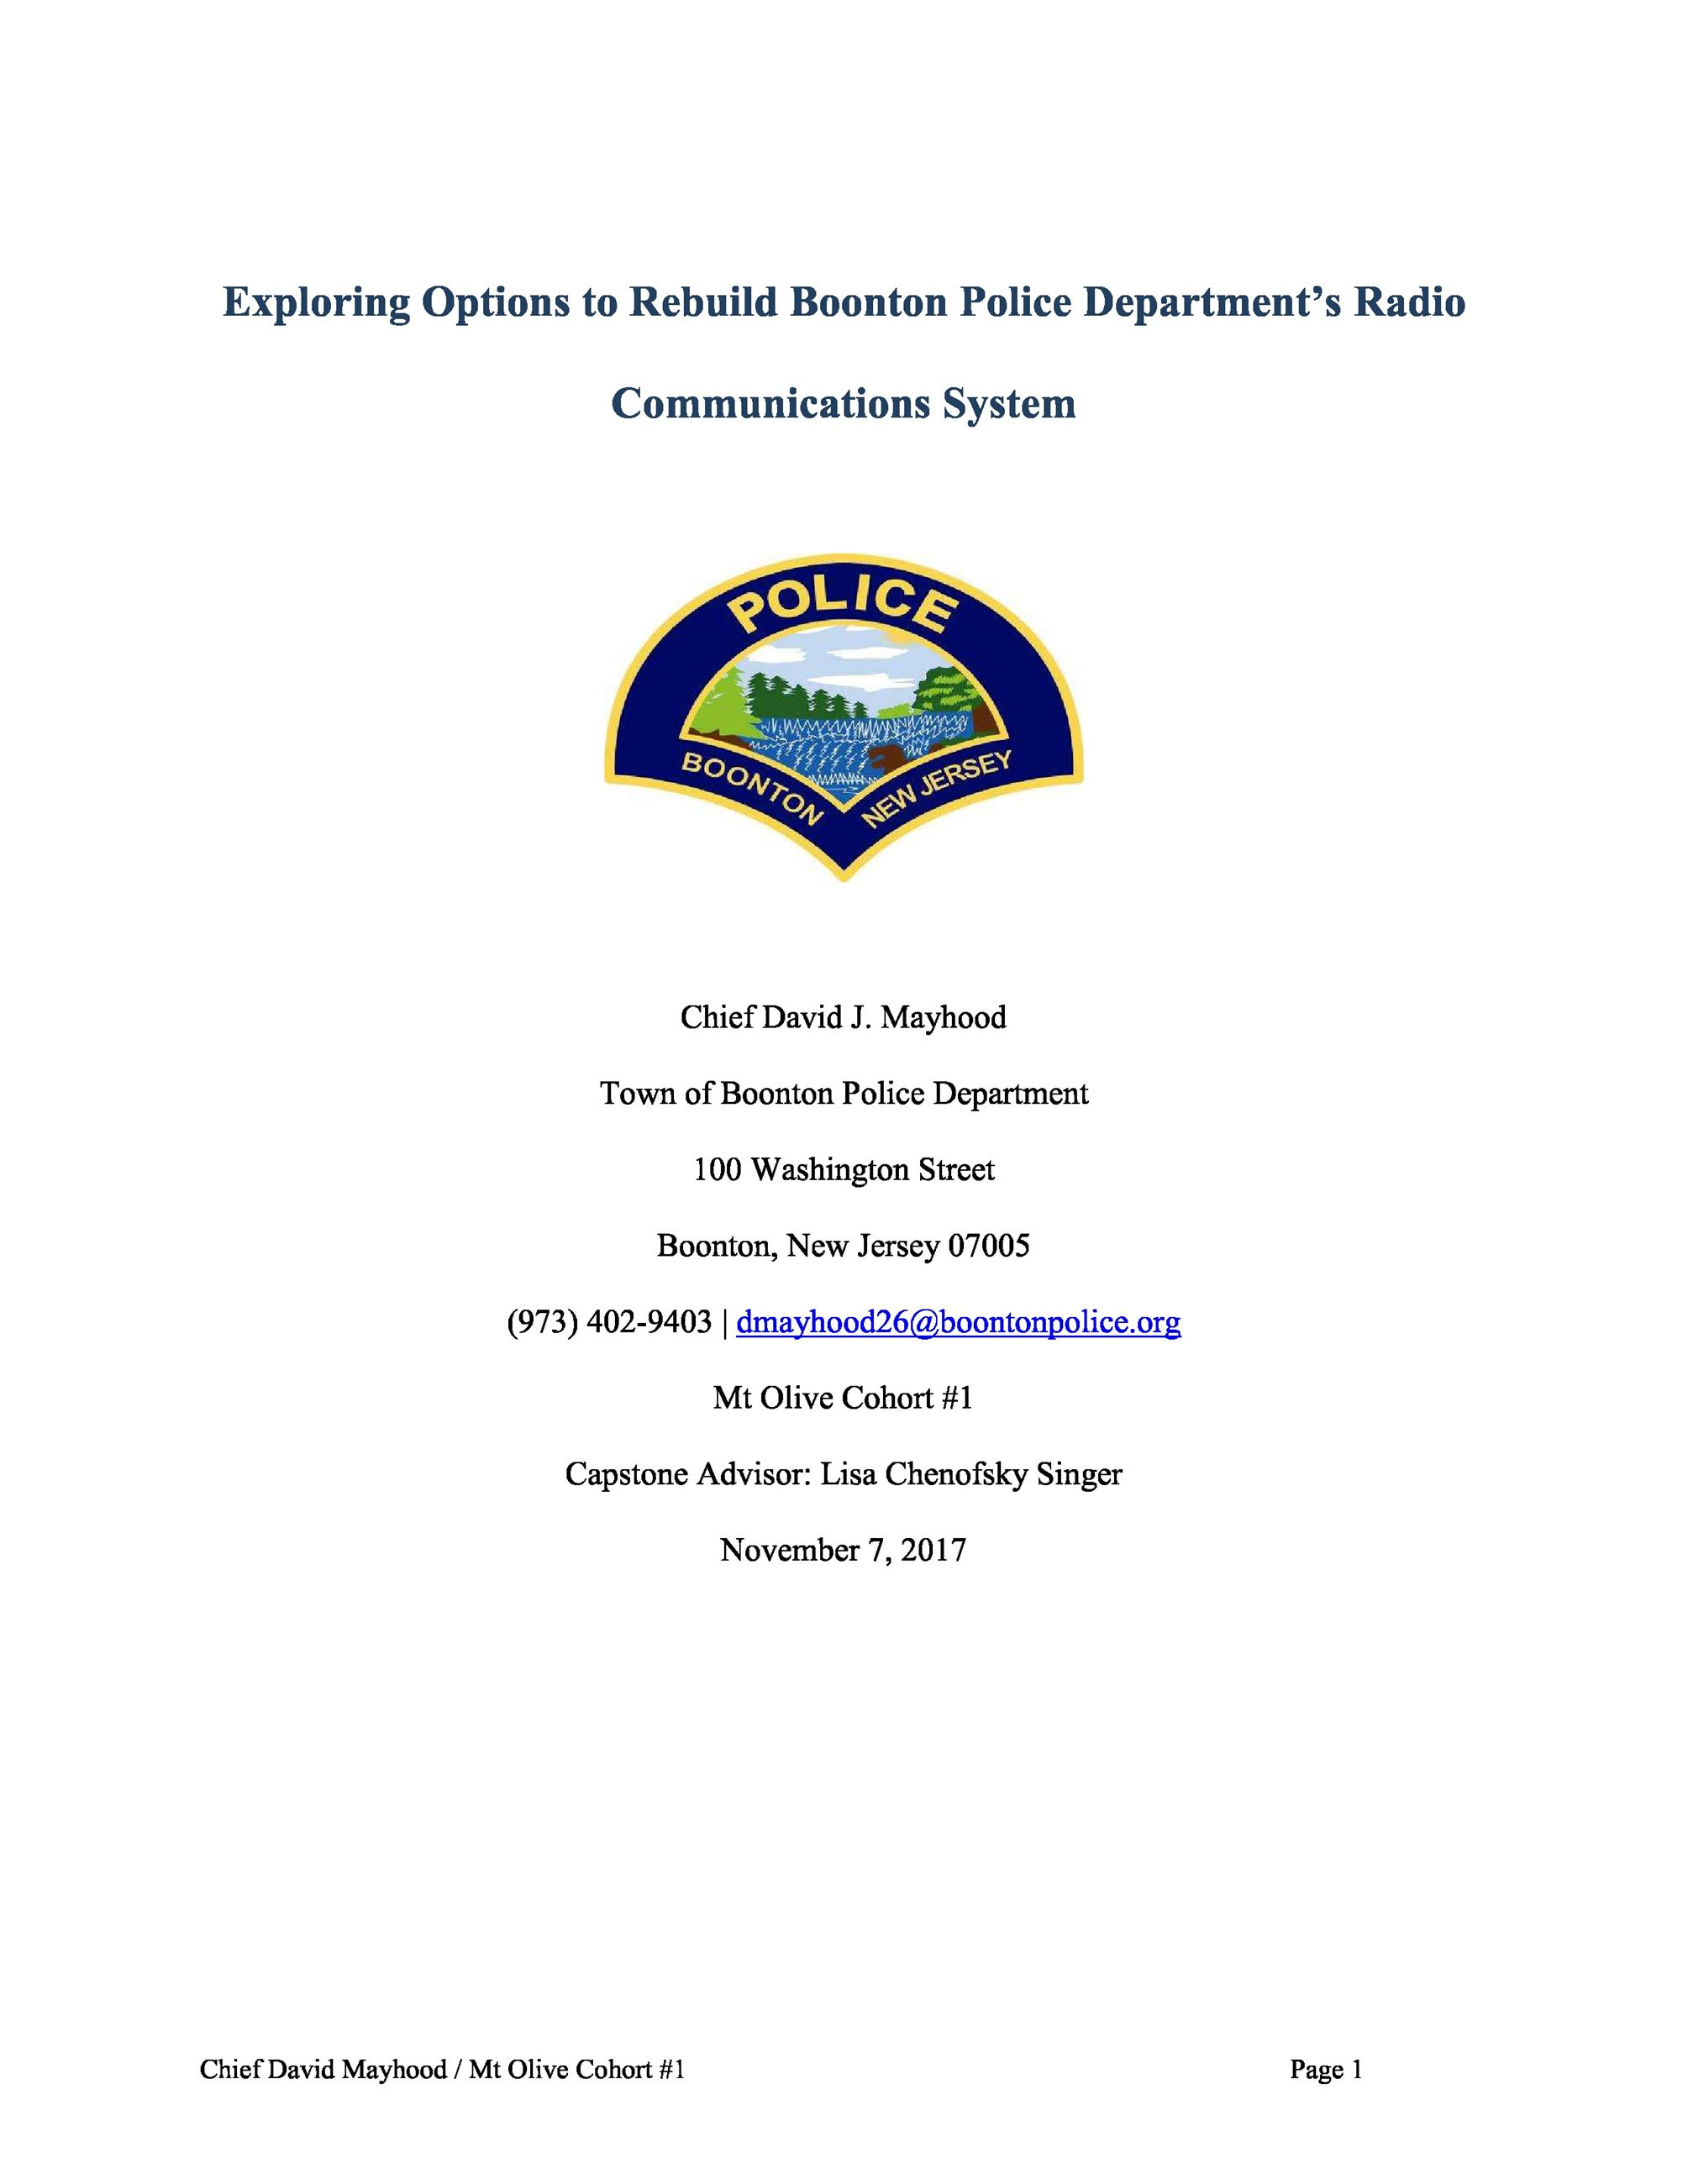 BPD REPORT COVER Page